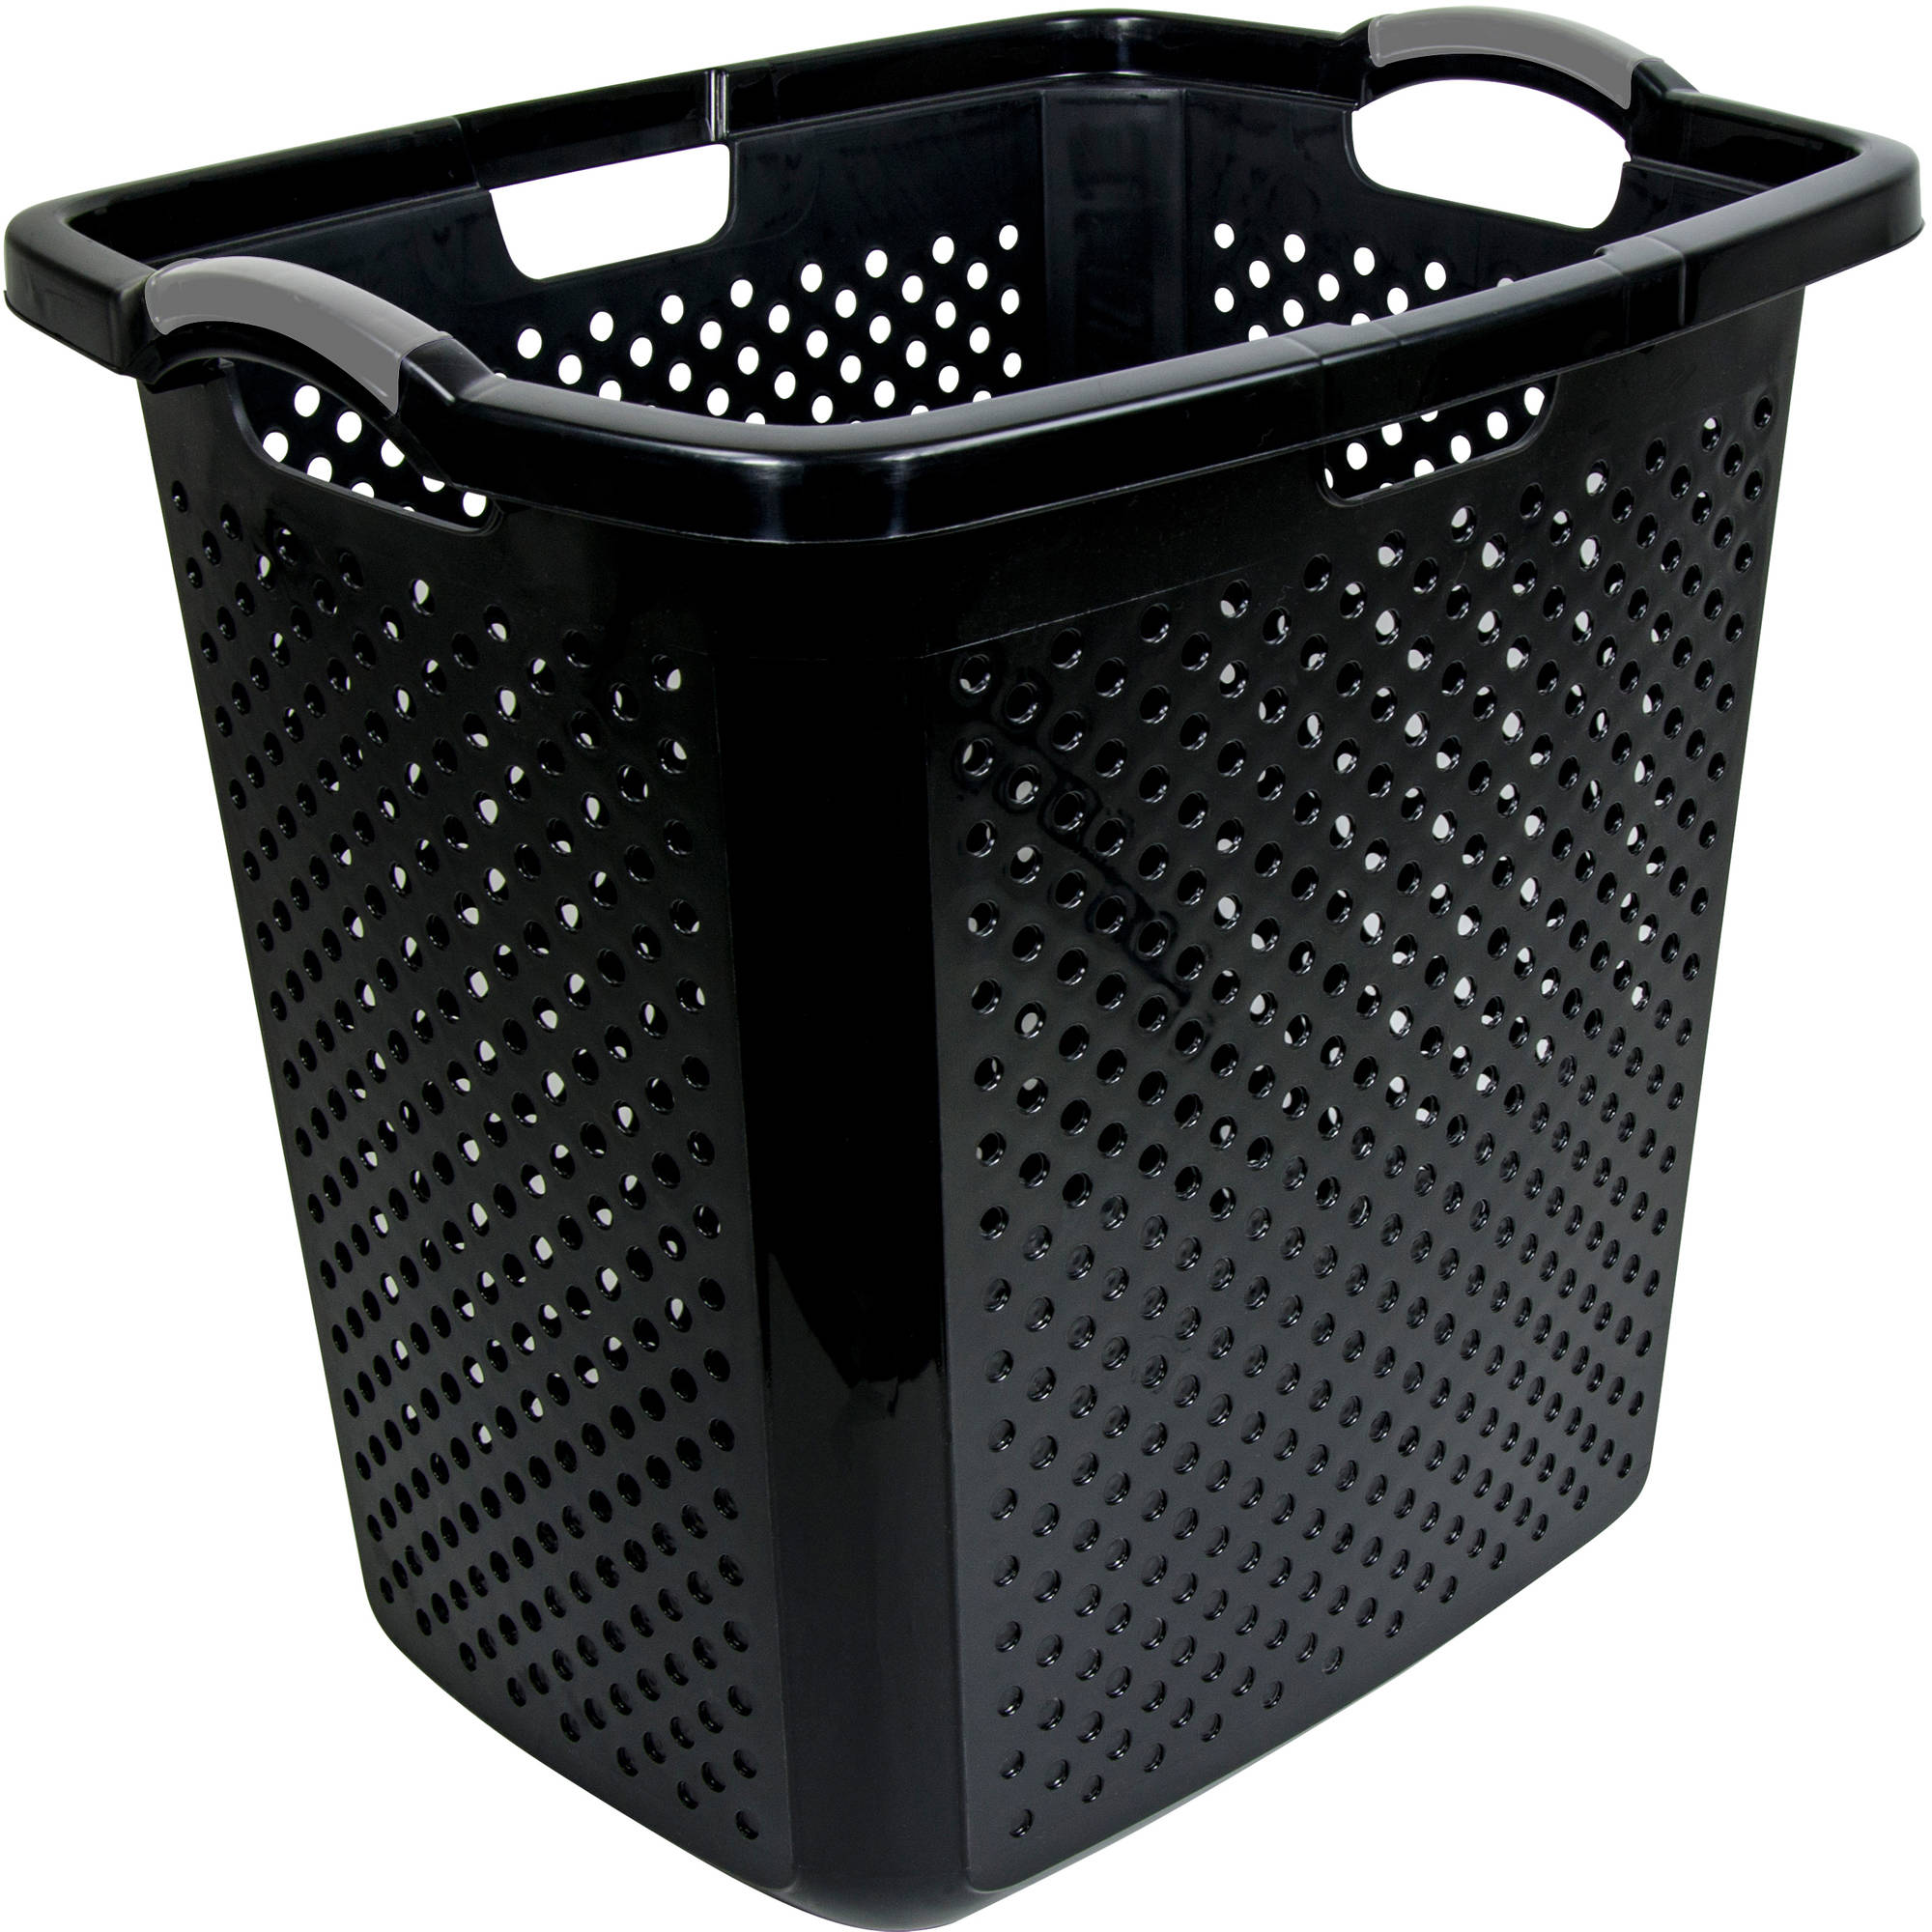 Plastic Laundry Basket With Wheels And Handle Interior Design Decorating Ideas